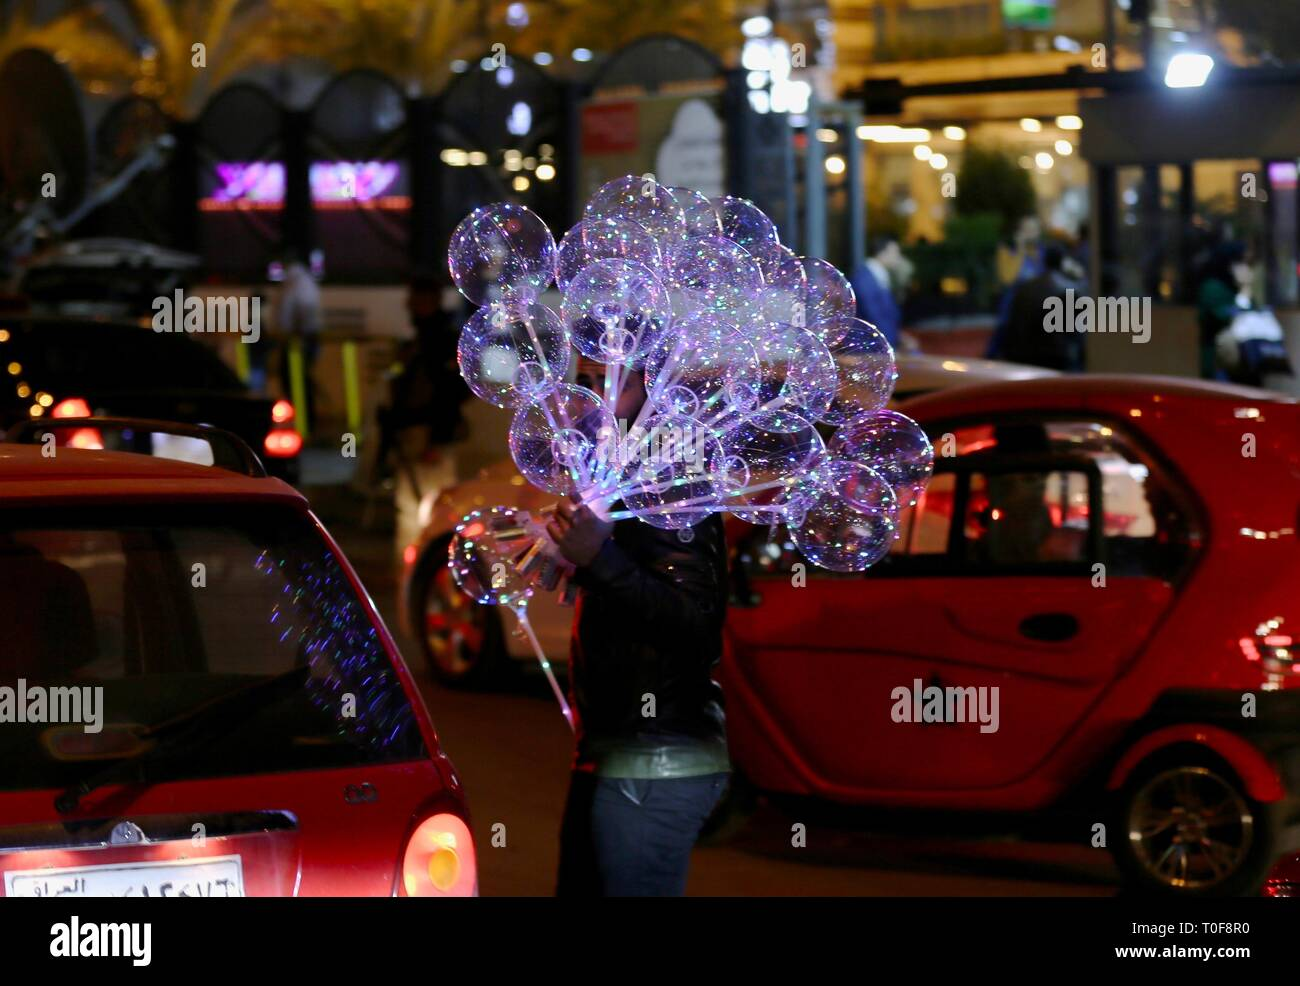 Baghdad, Iraq. 19th Mar, 2019. A boy sells balloons at night in Baghdad, Iraq, Dec. 10, 2018. (TO GO WITH Feature: Rising hopes, opportunities 16 years after U.S.-led invasion in Iraq, released on March 19, 2019) Credit: Xinhua/Alamy Live News Stock Photo